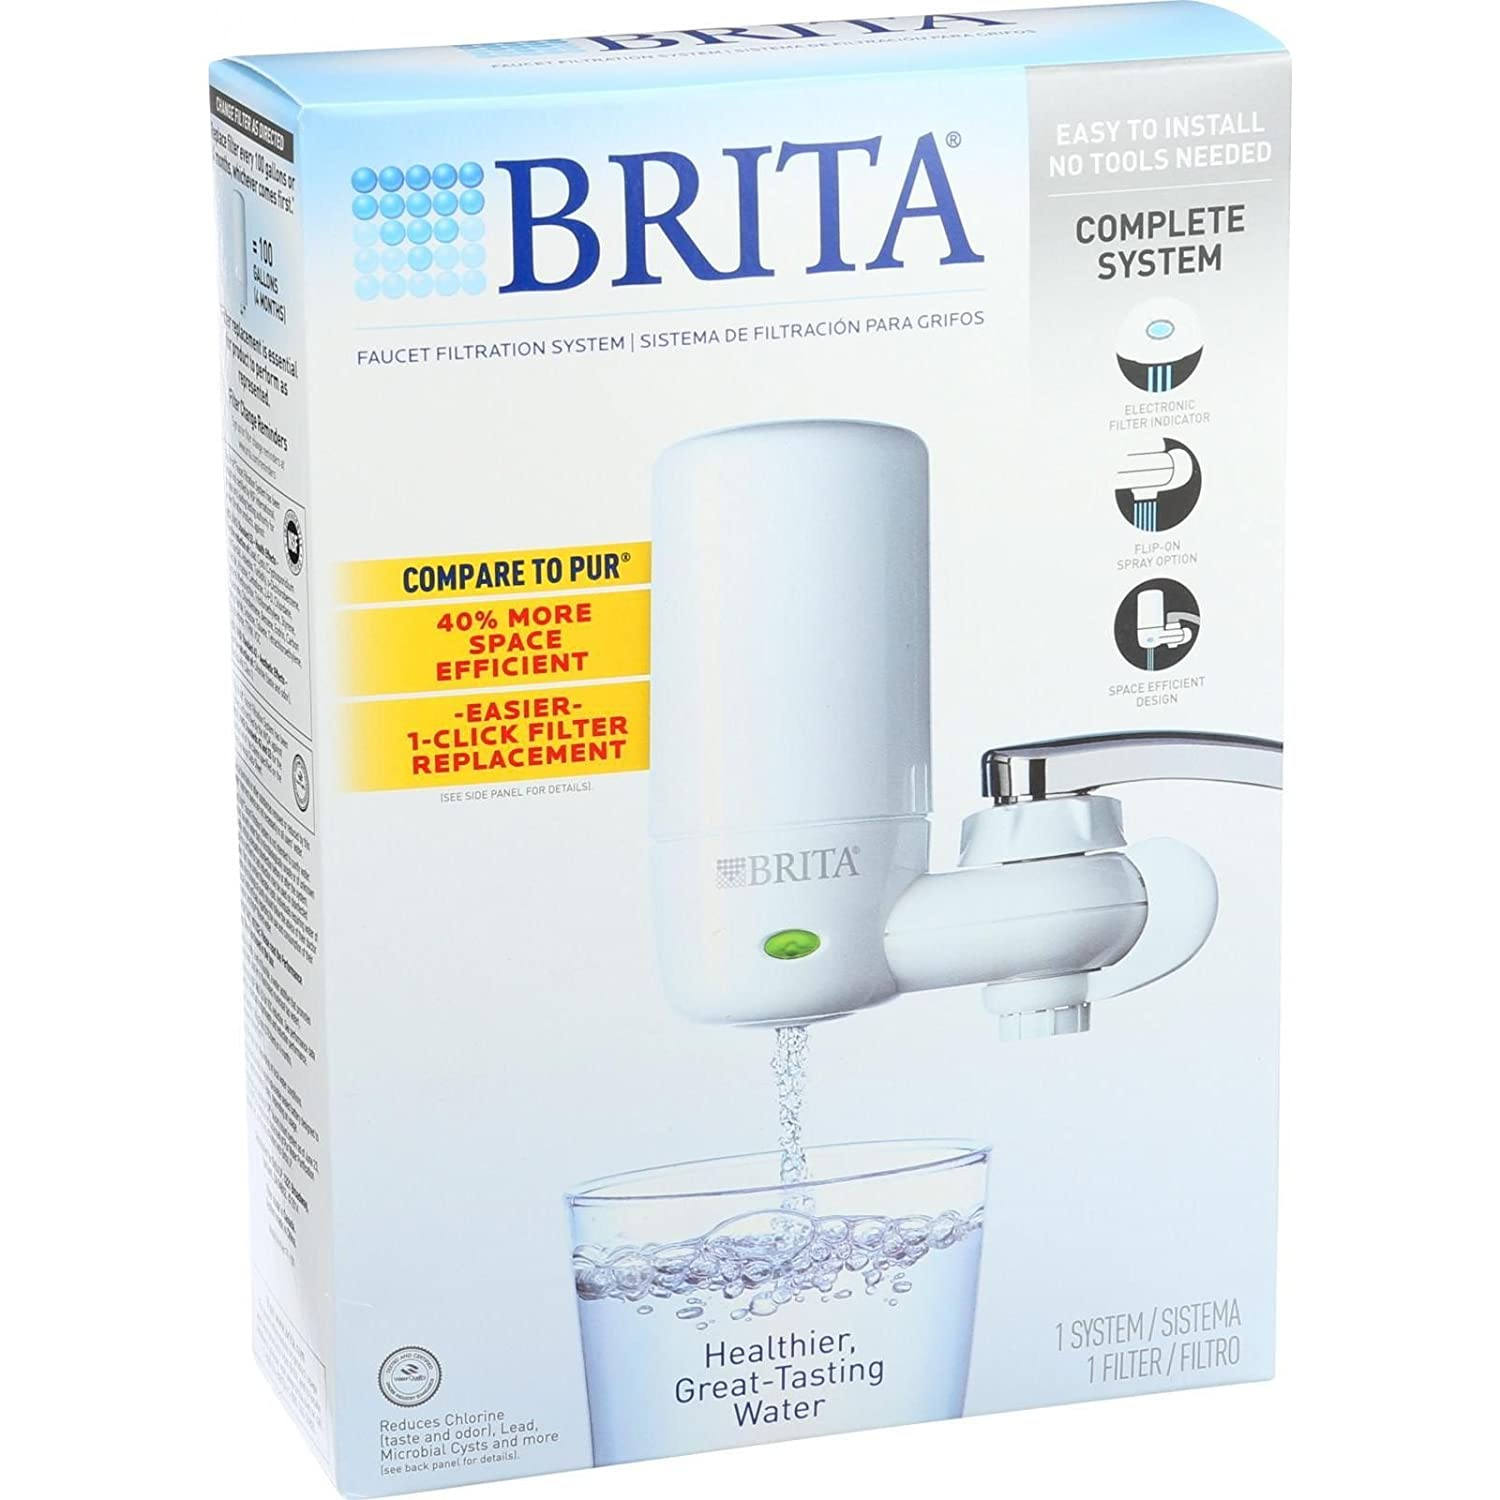 Amazon.com: Brita Advanced Faucet Filtration System - White - 1 ...